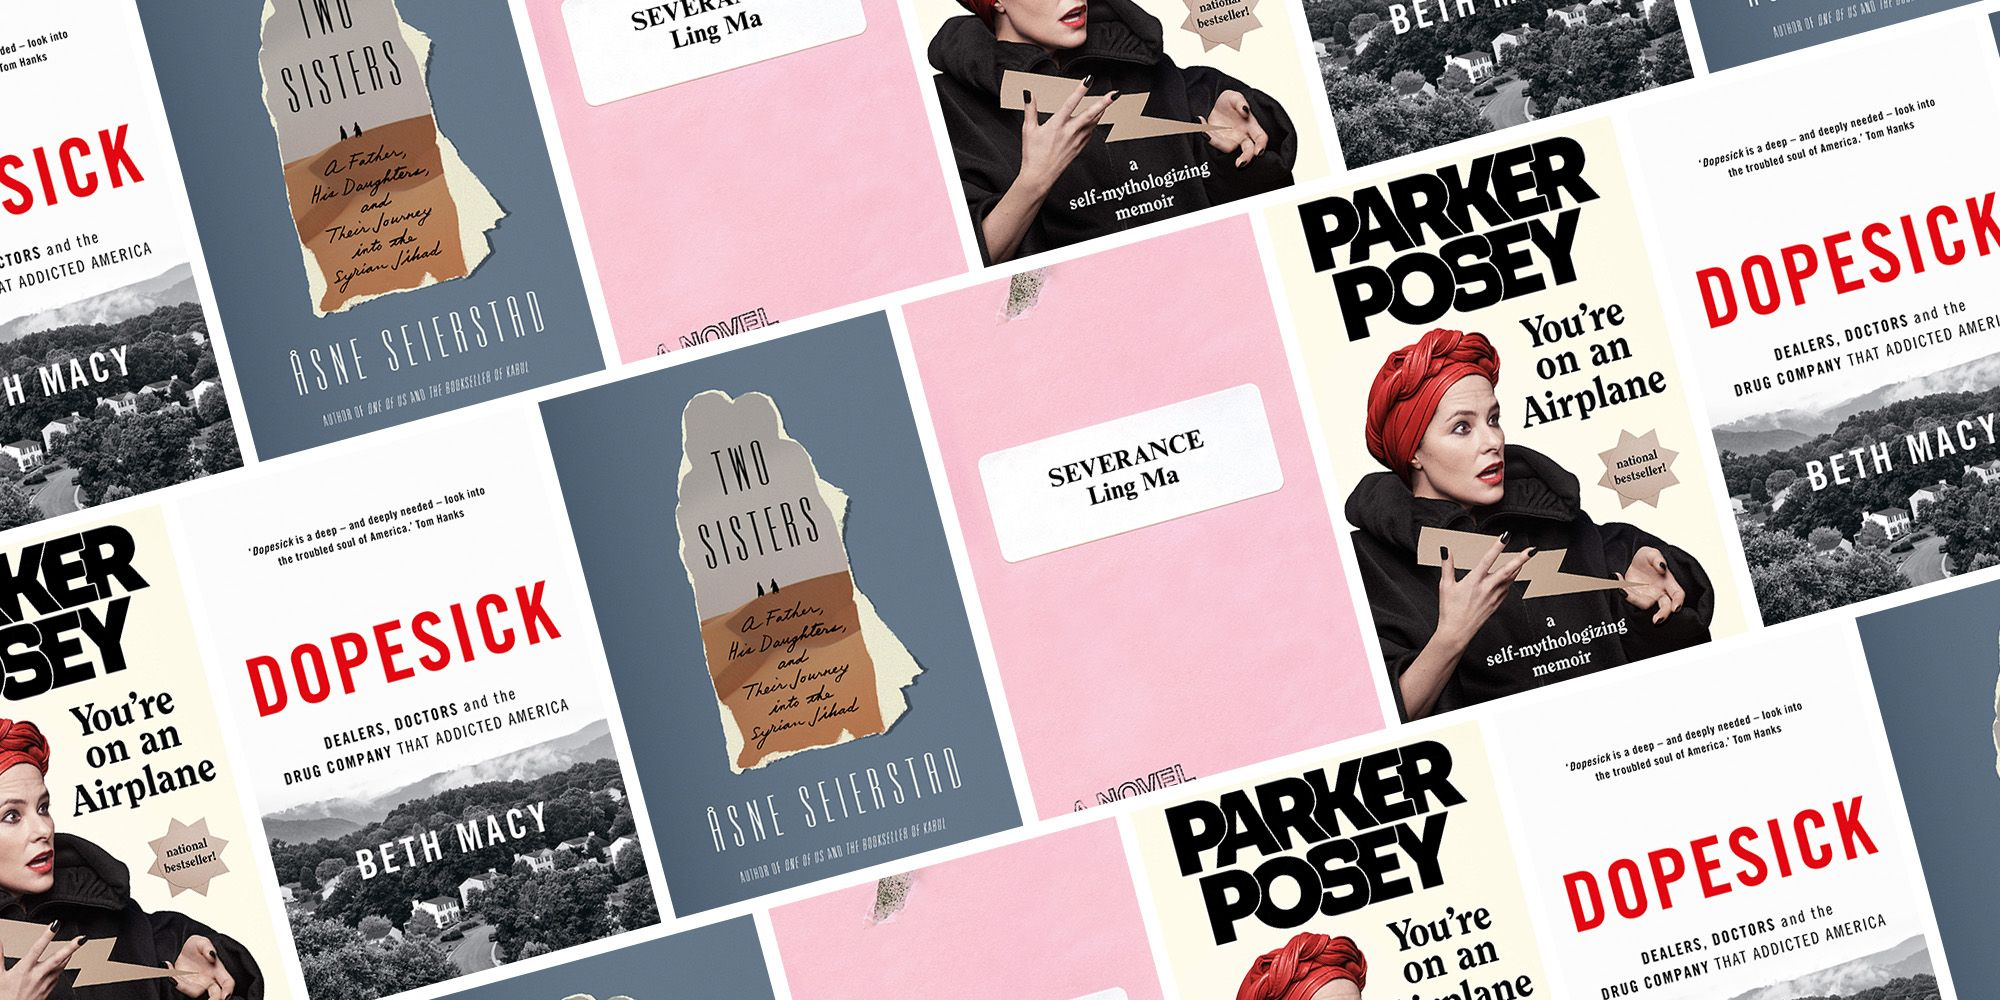 29 Best Books Of 2018 New Books To Read In 2018